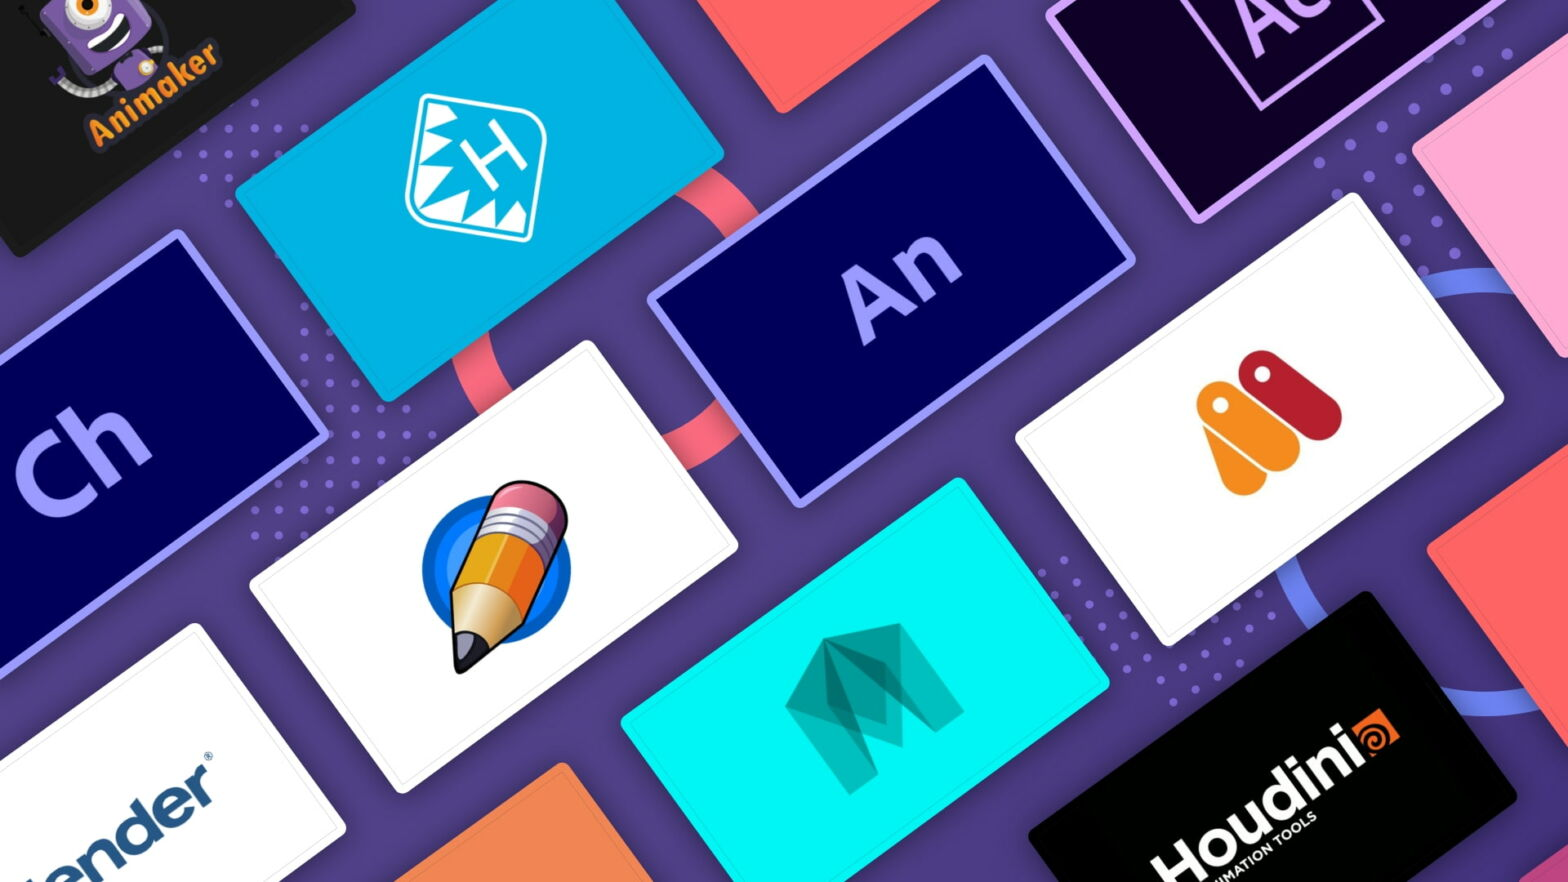 Best Animation Software — 2D, 3D, Paid, and Free Options - Featured